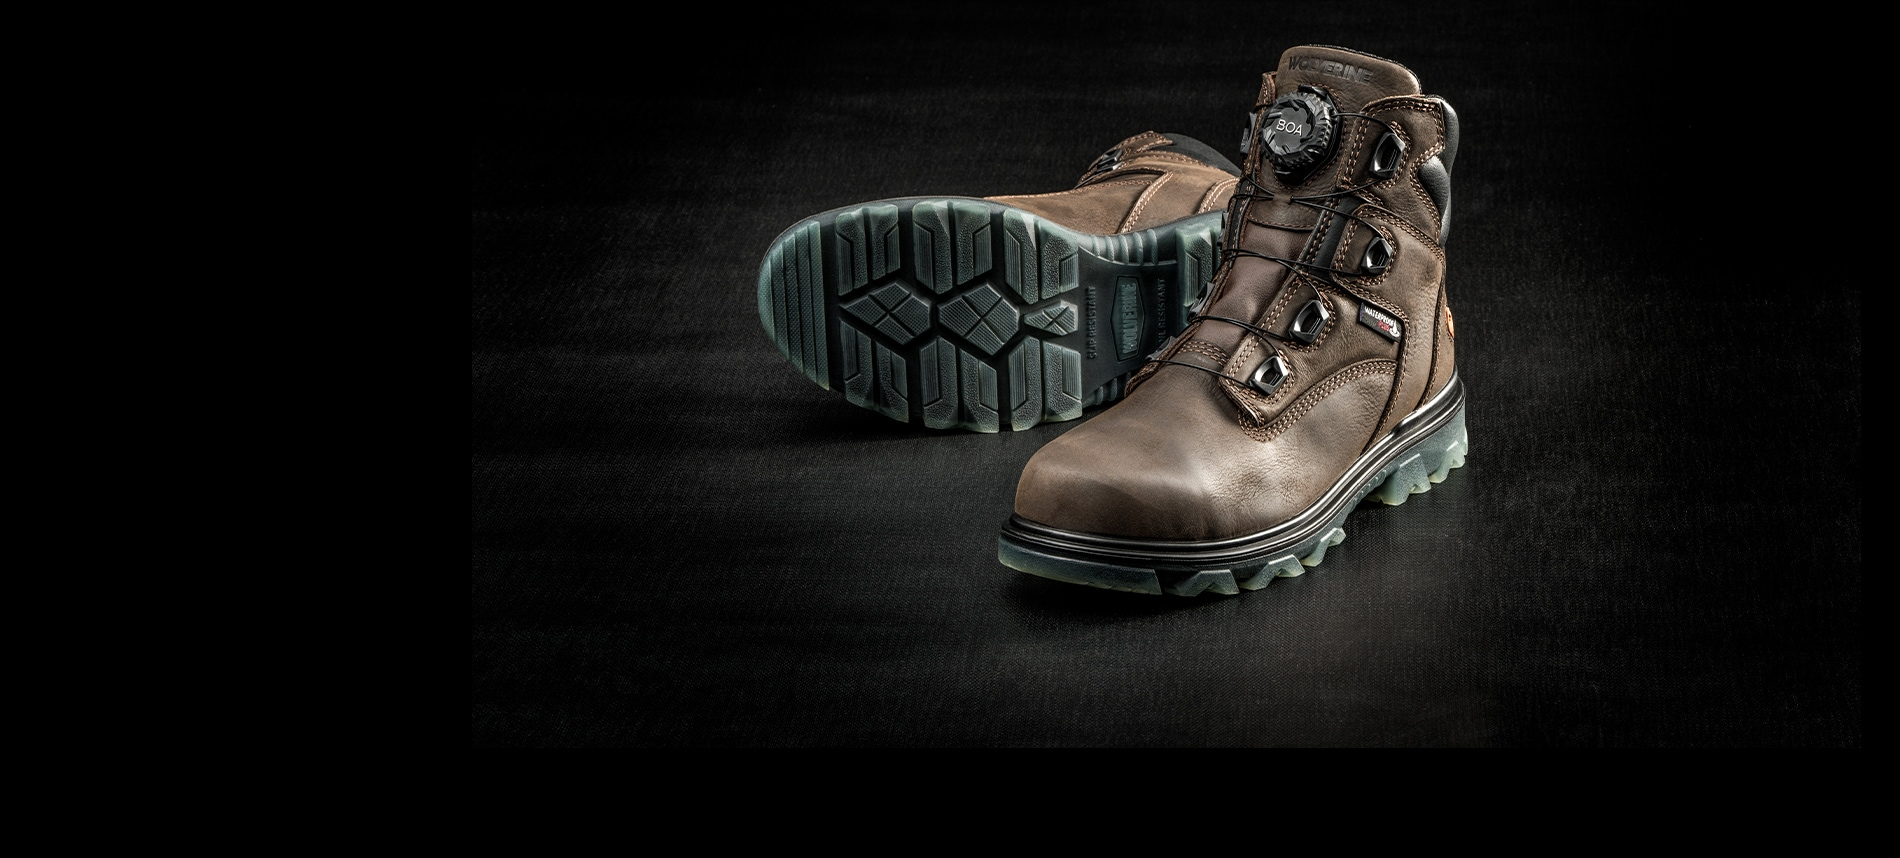 A pair of I-90 EPX boots with the Boa system